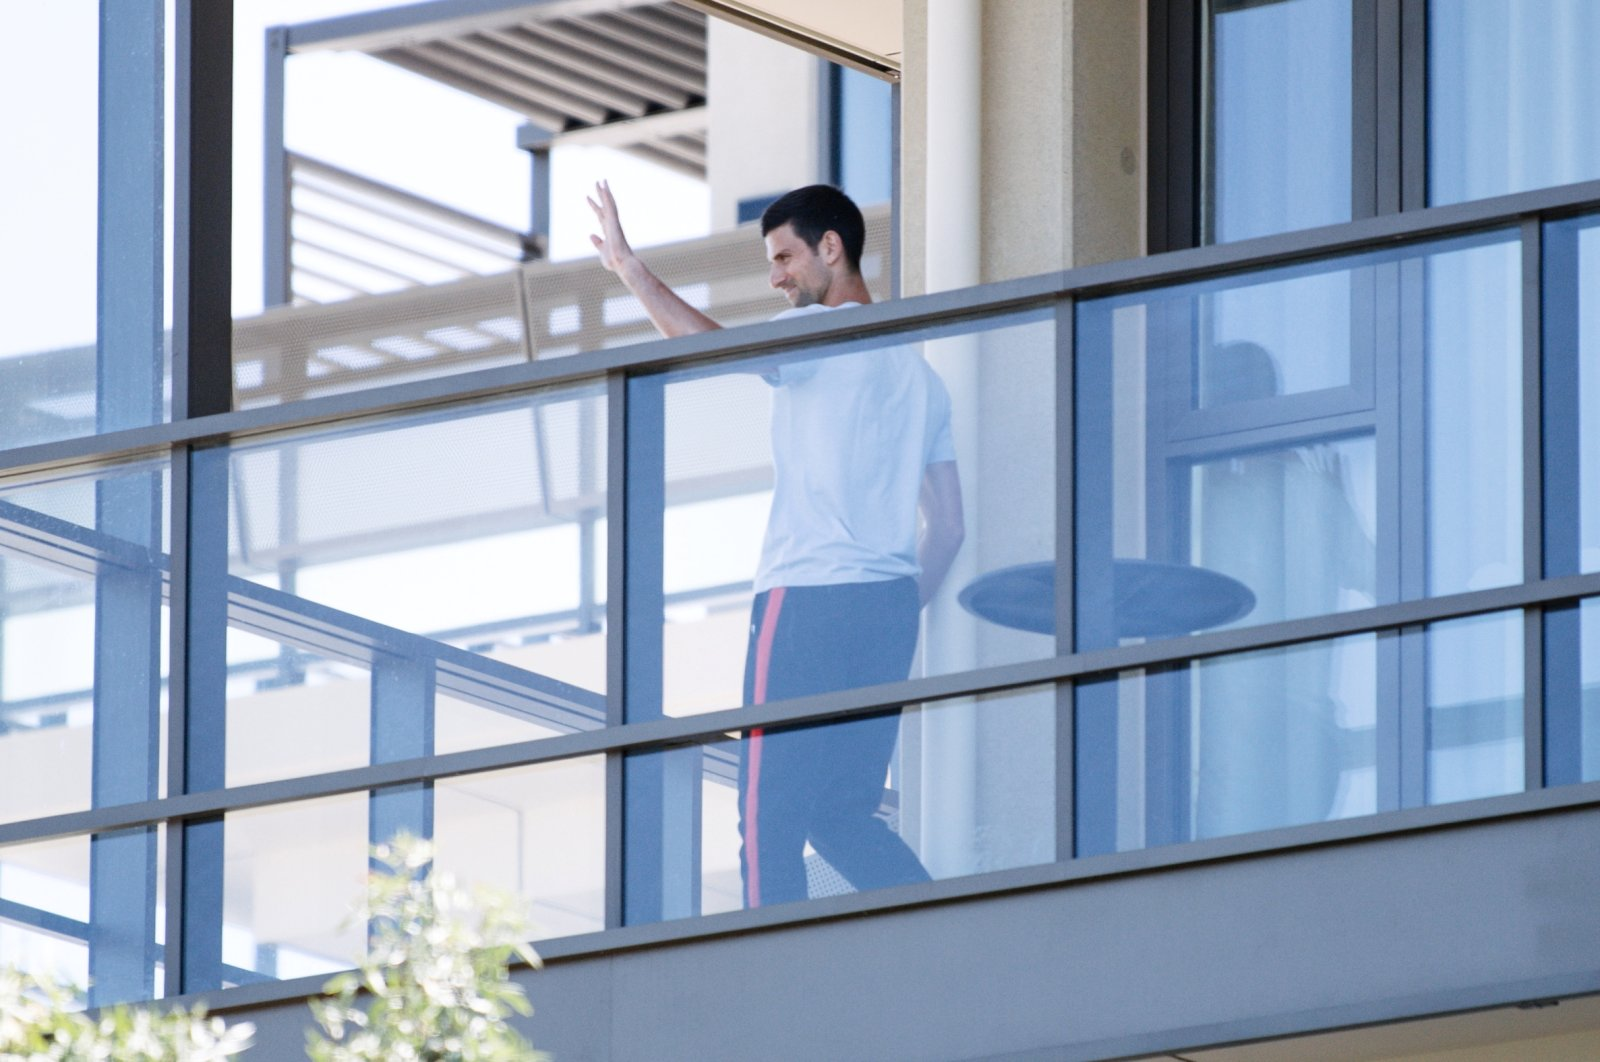 Tennis star Novak Djokovic waves from his balcony at accommodations where he is quarantining in advance of the Australian Open to be played in Melbourne, in North Adelaide, Australia, Jan. 19, 2021.  (AAP Image/Morgan Sette via Reuters)